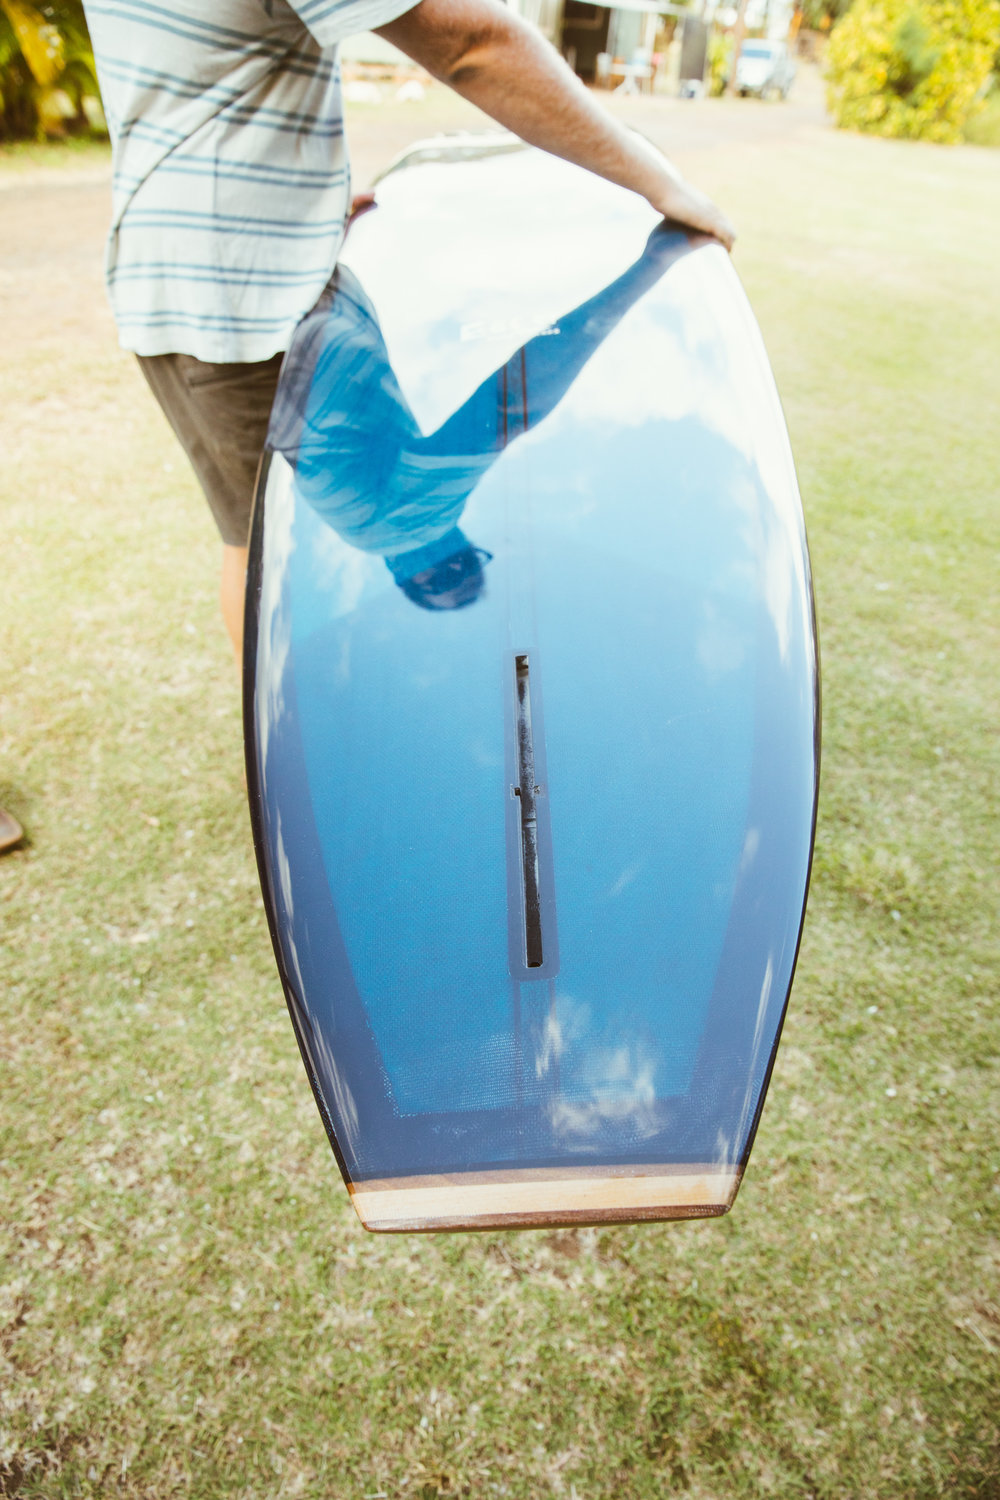 bryce johnson-photography-ebert surfboards-kauai-34.jpg